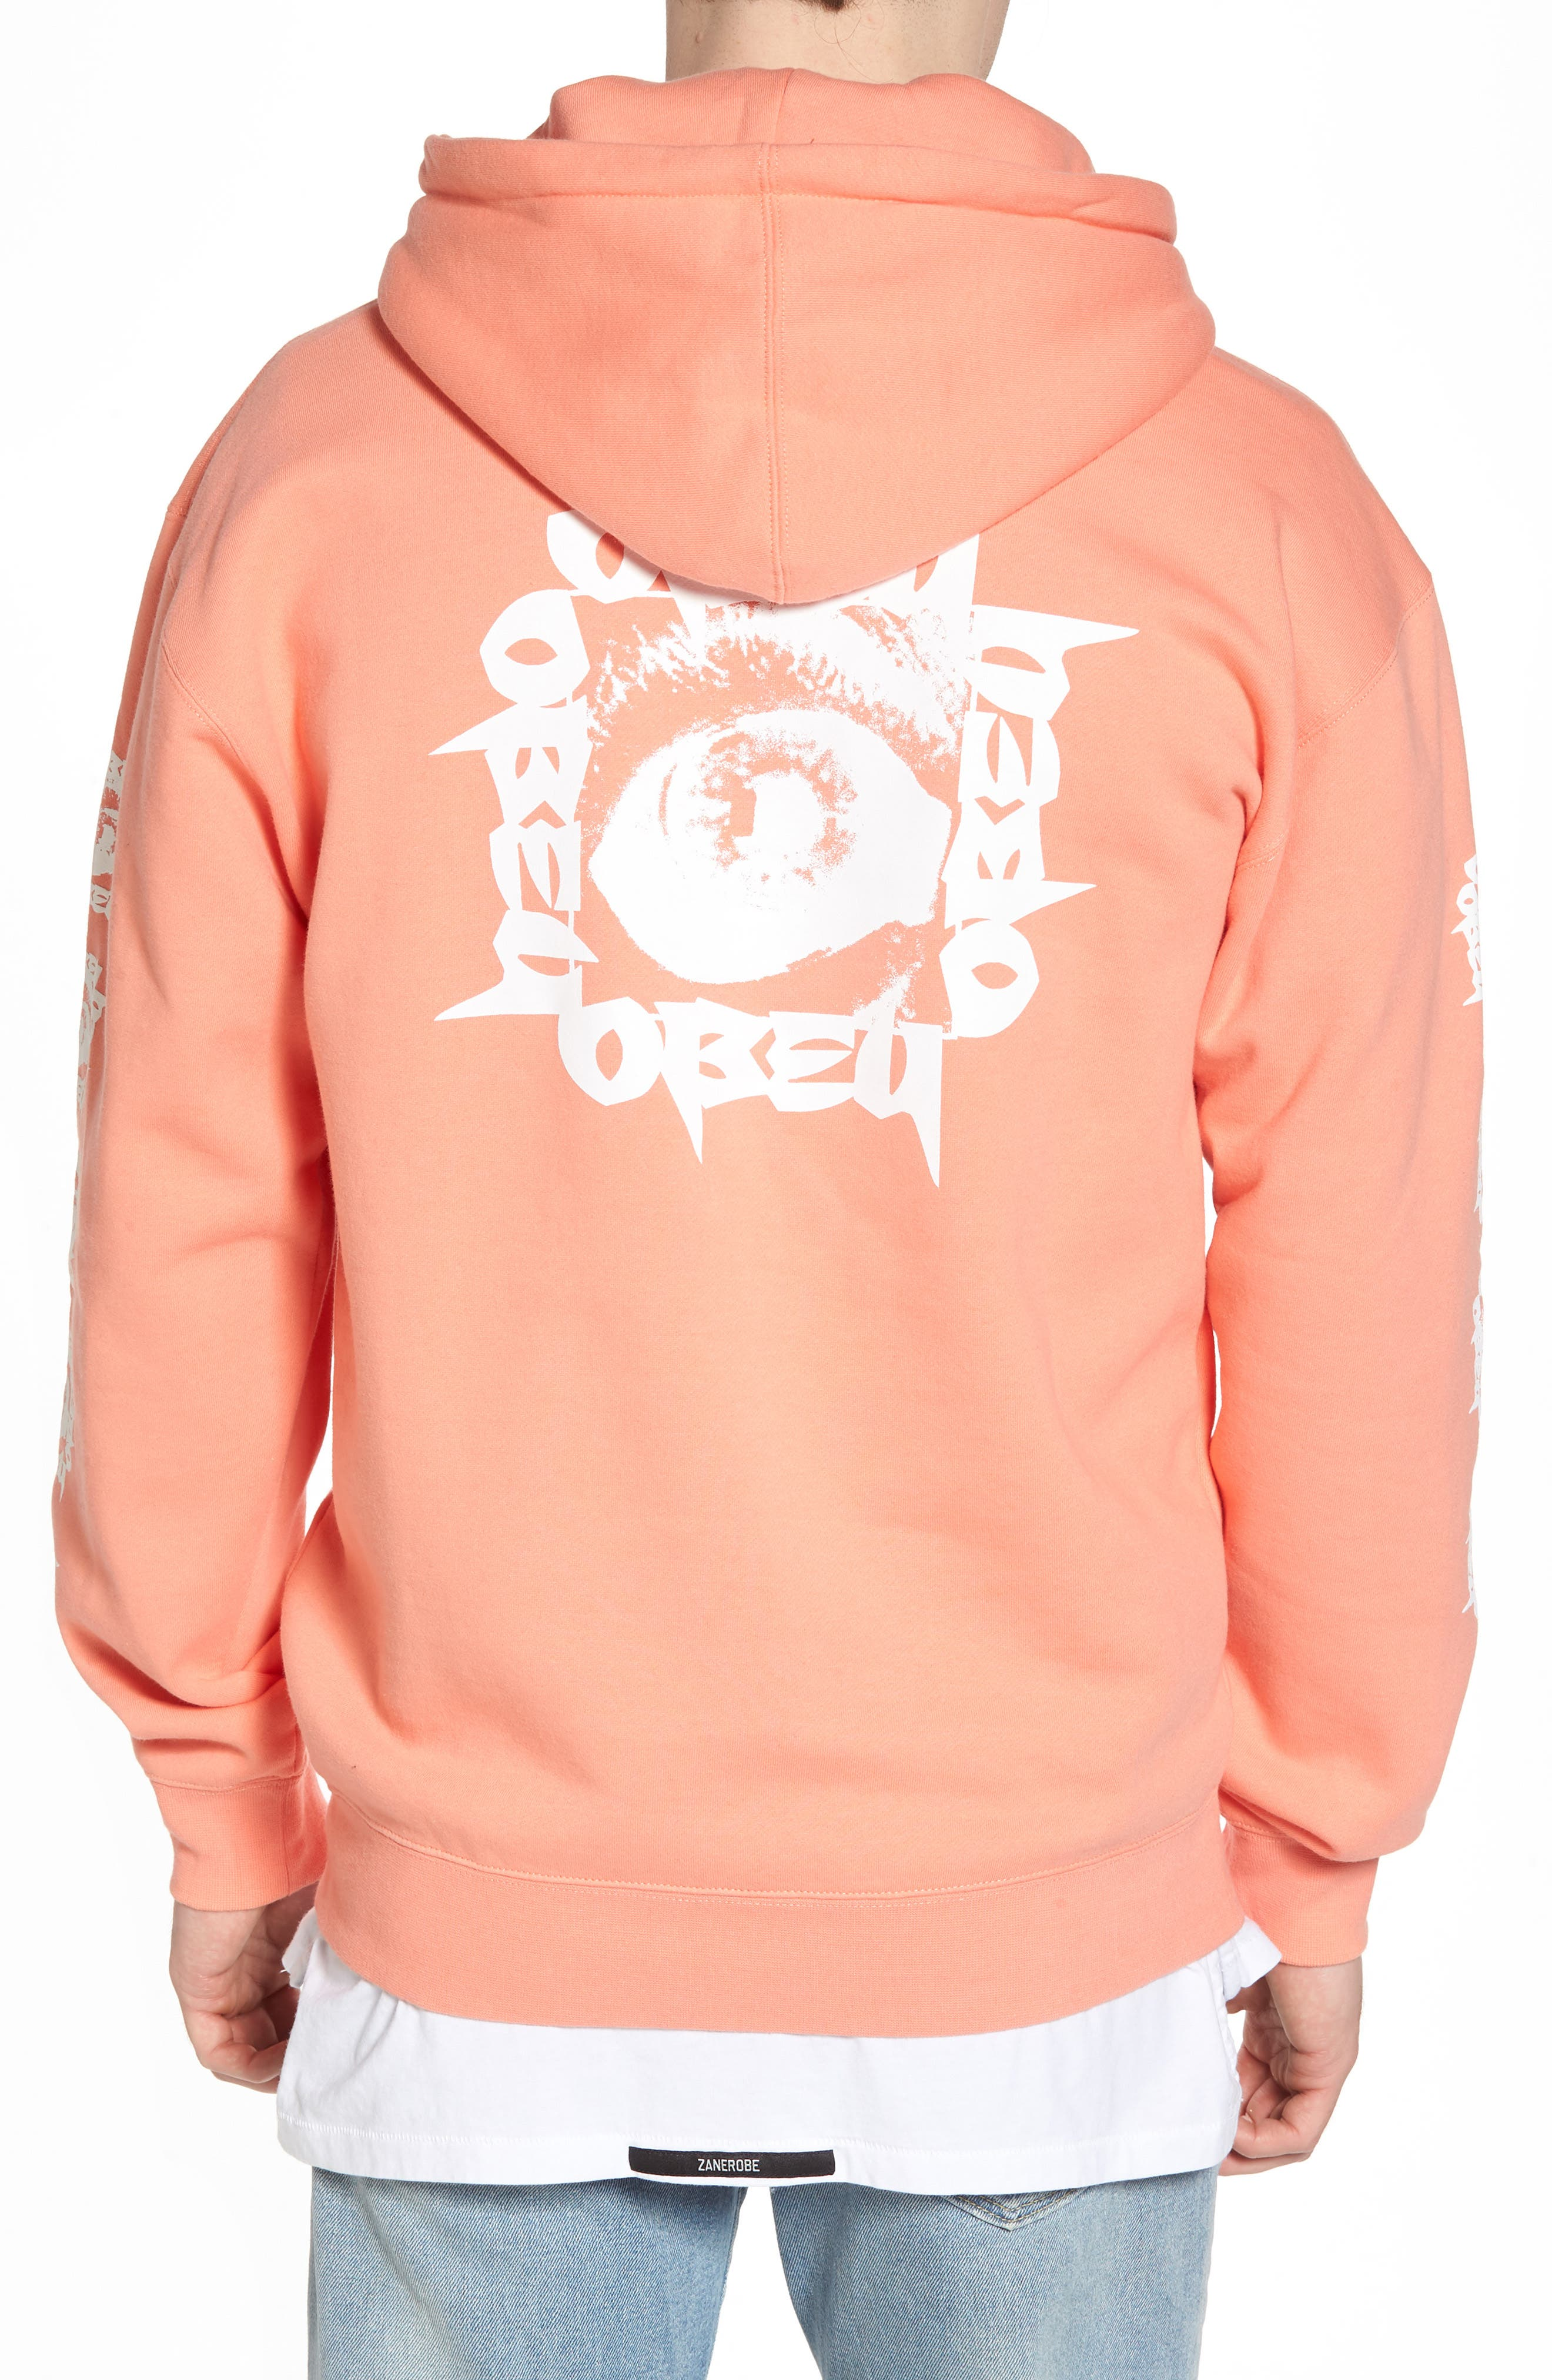 Tunnel Vision Hoodie Sweatshirt,                             Alternate thumbnail 2, color,                             Coral